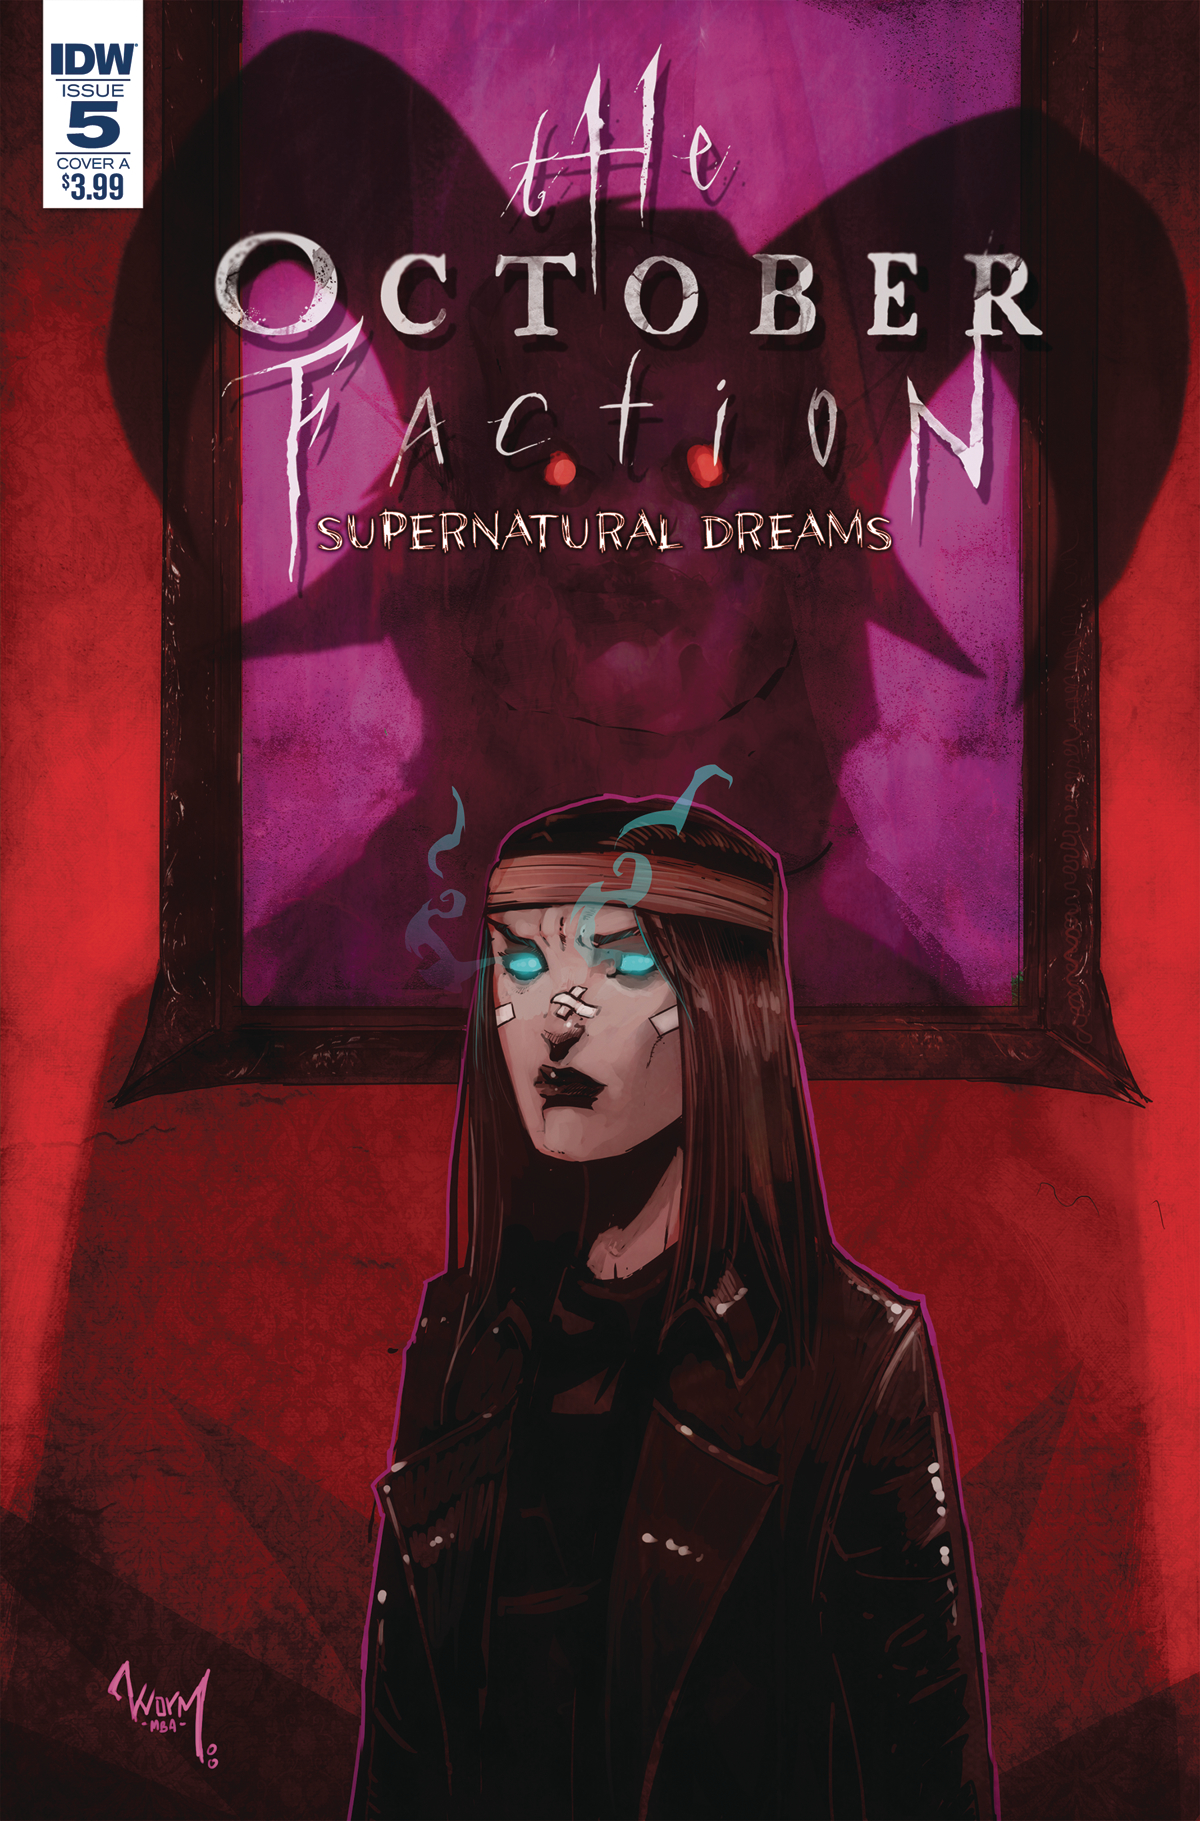 OCTOBER FACTION SUPERNATURAL DREAMS #5 CVR A WORM